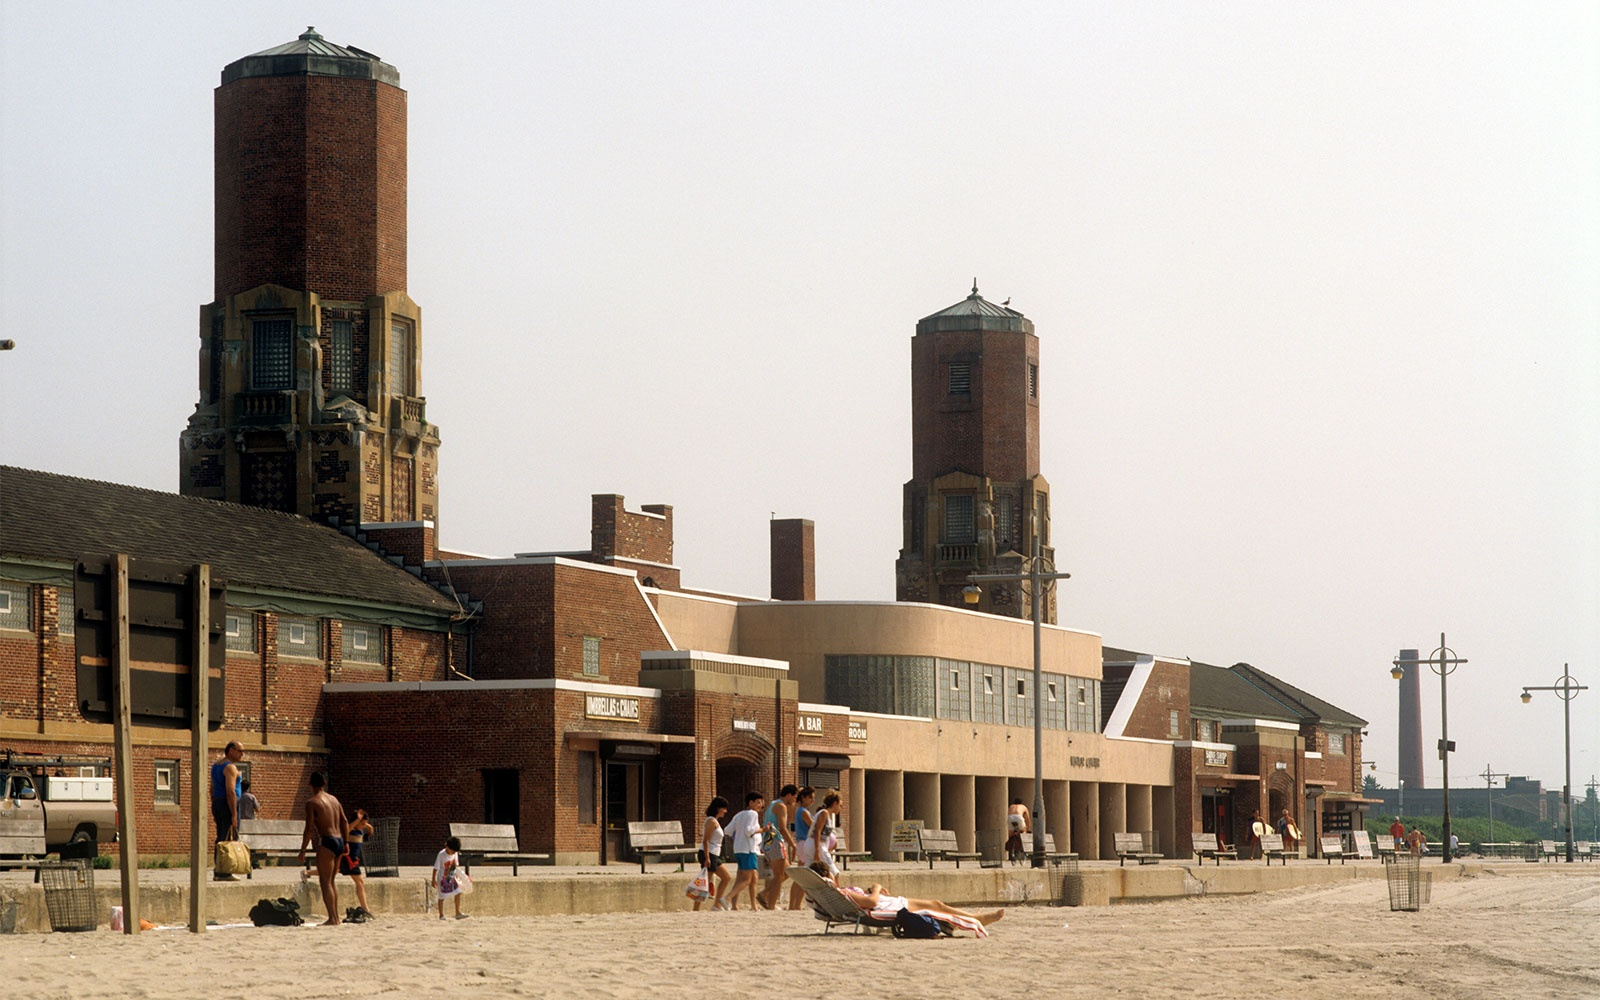 Jacob Riis Park